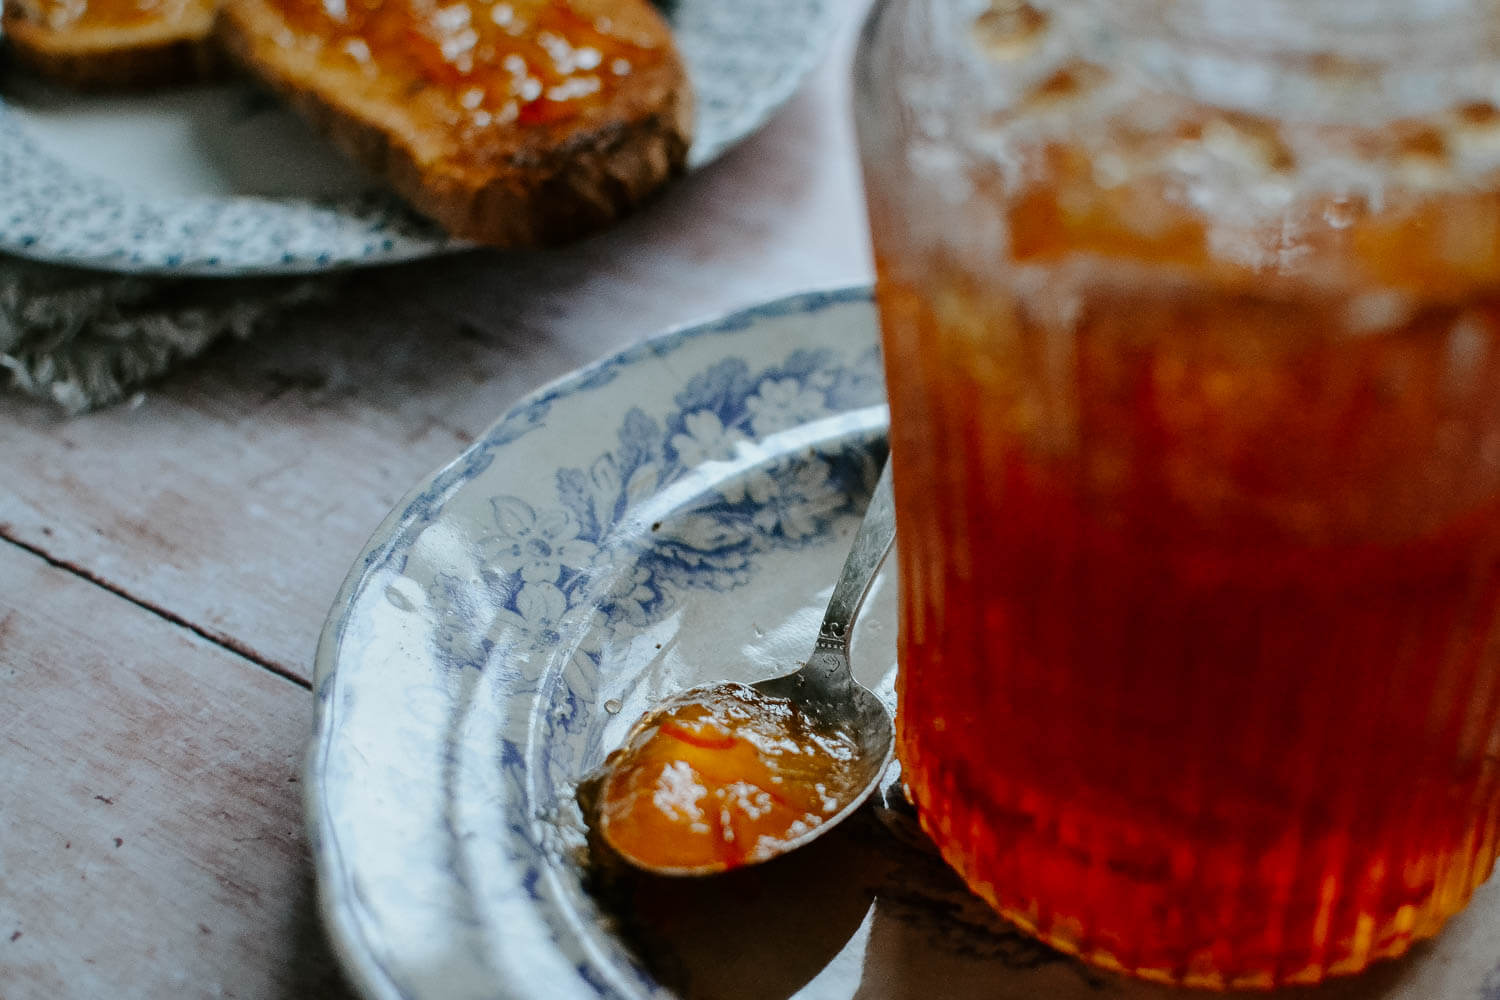 Large jar of orange marmalade on a rustic table with vintage china plates